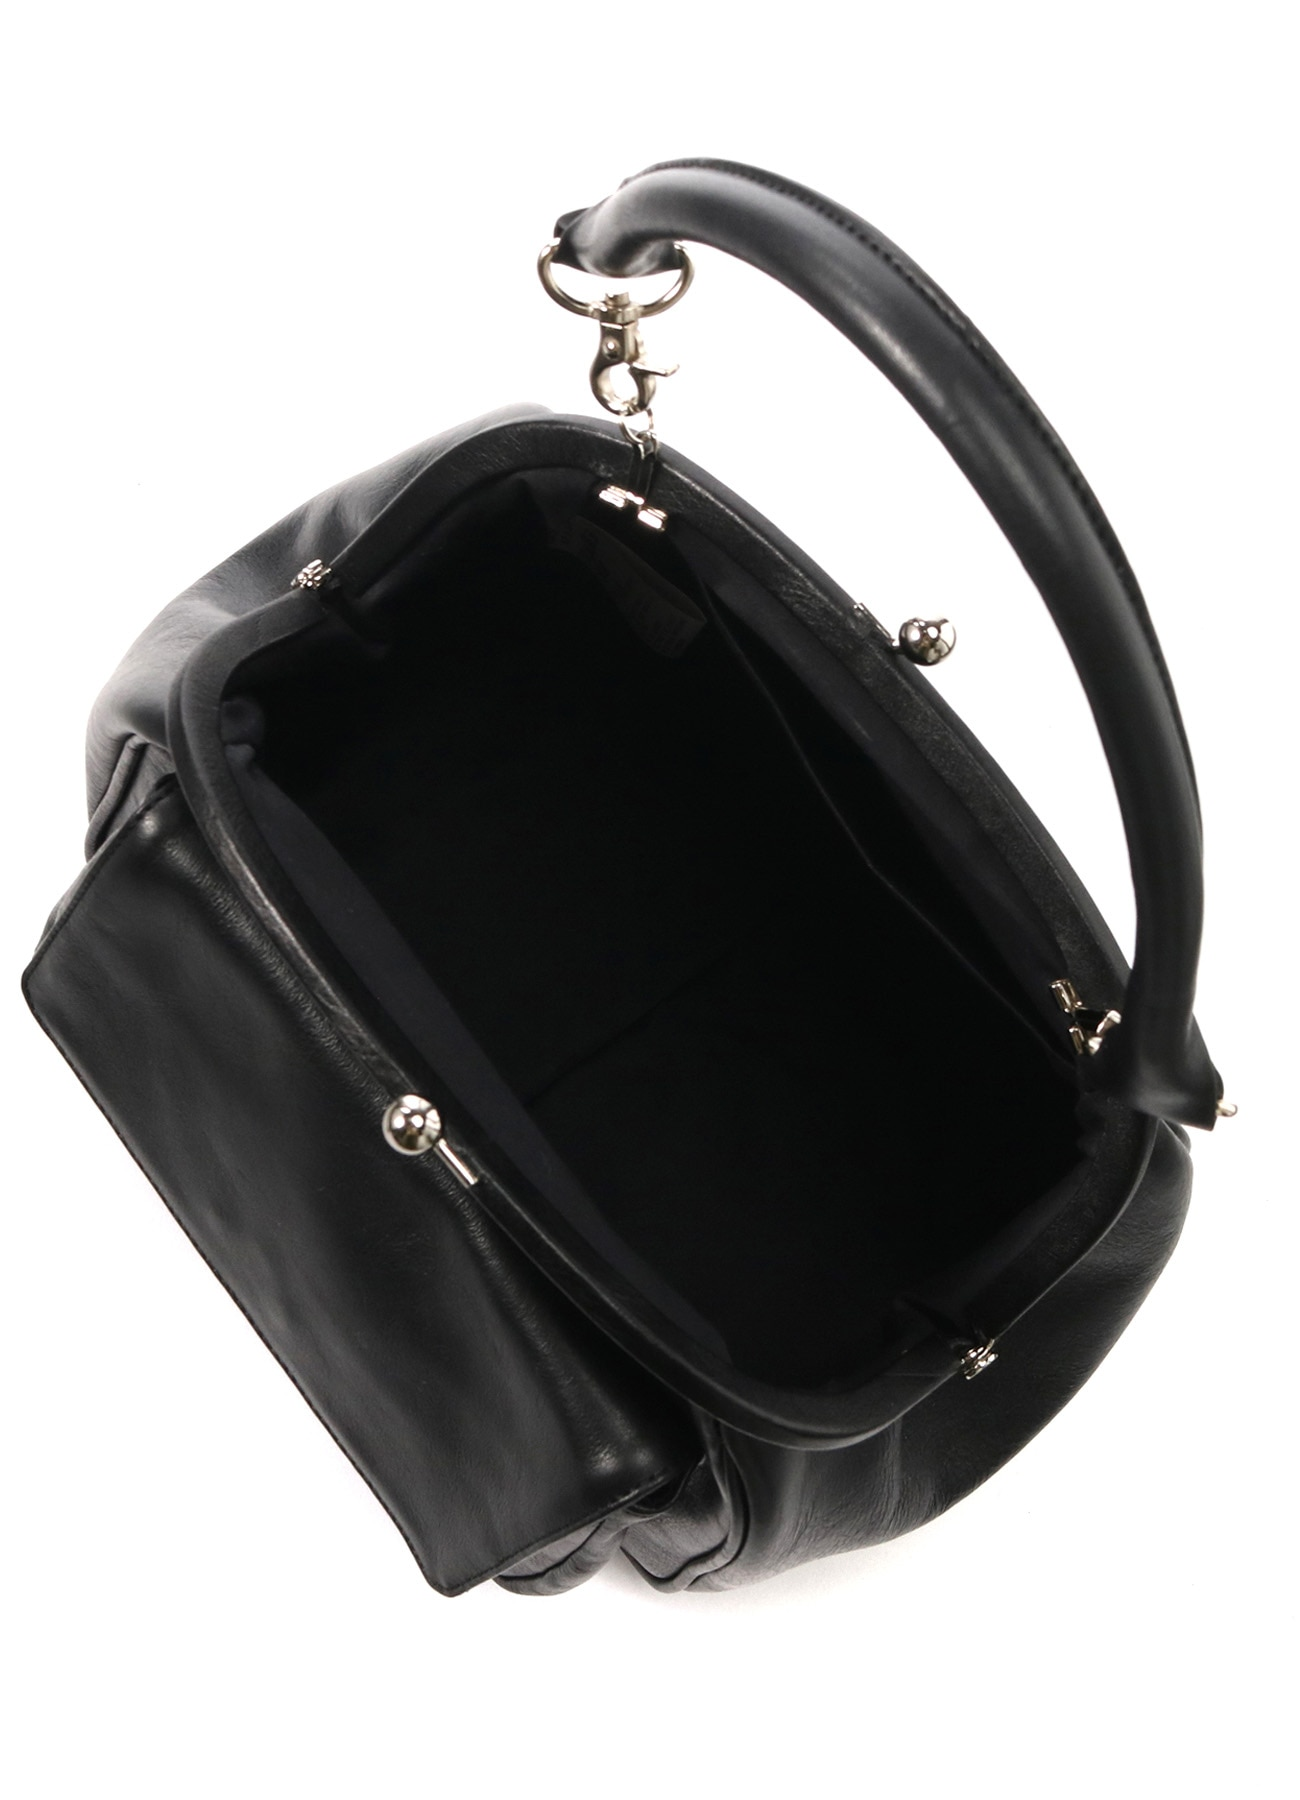 SEMI GLOSS LEATHER A CLASP PKT BAG